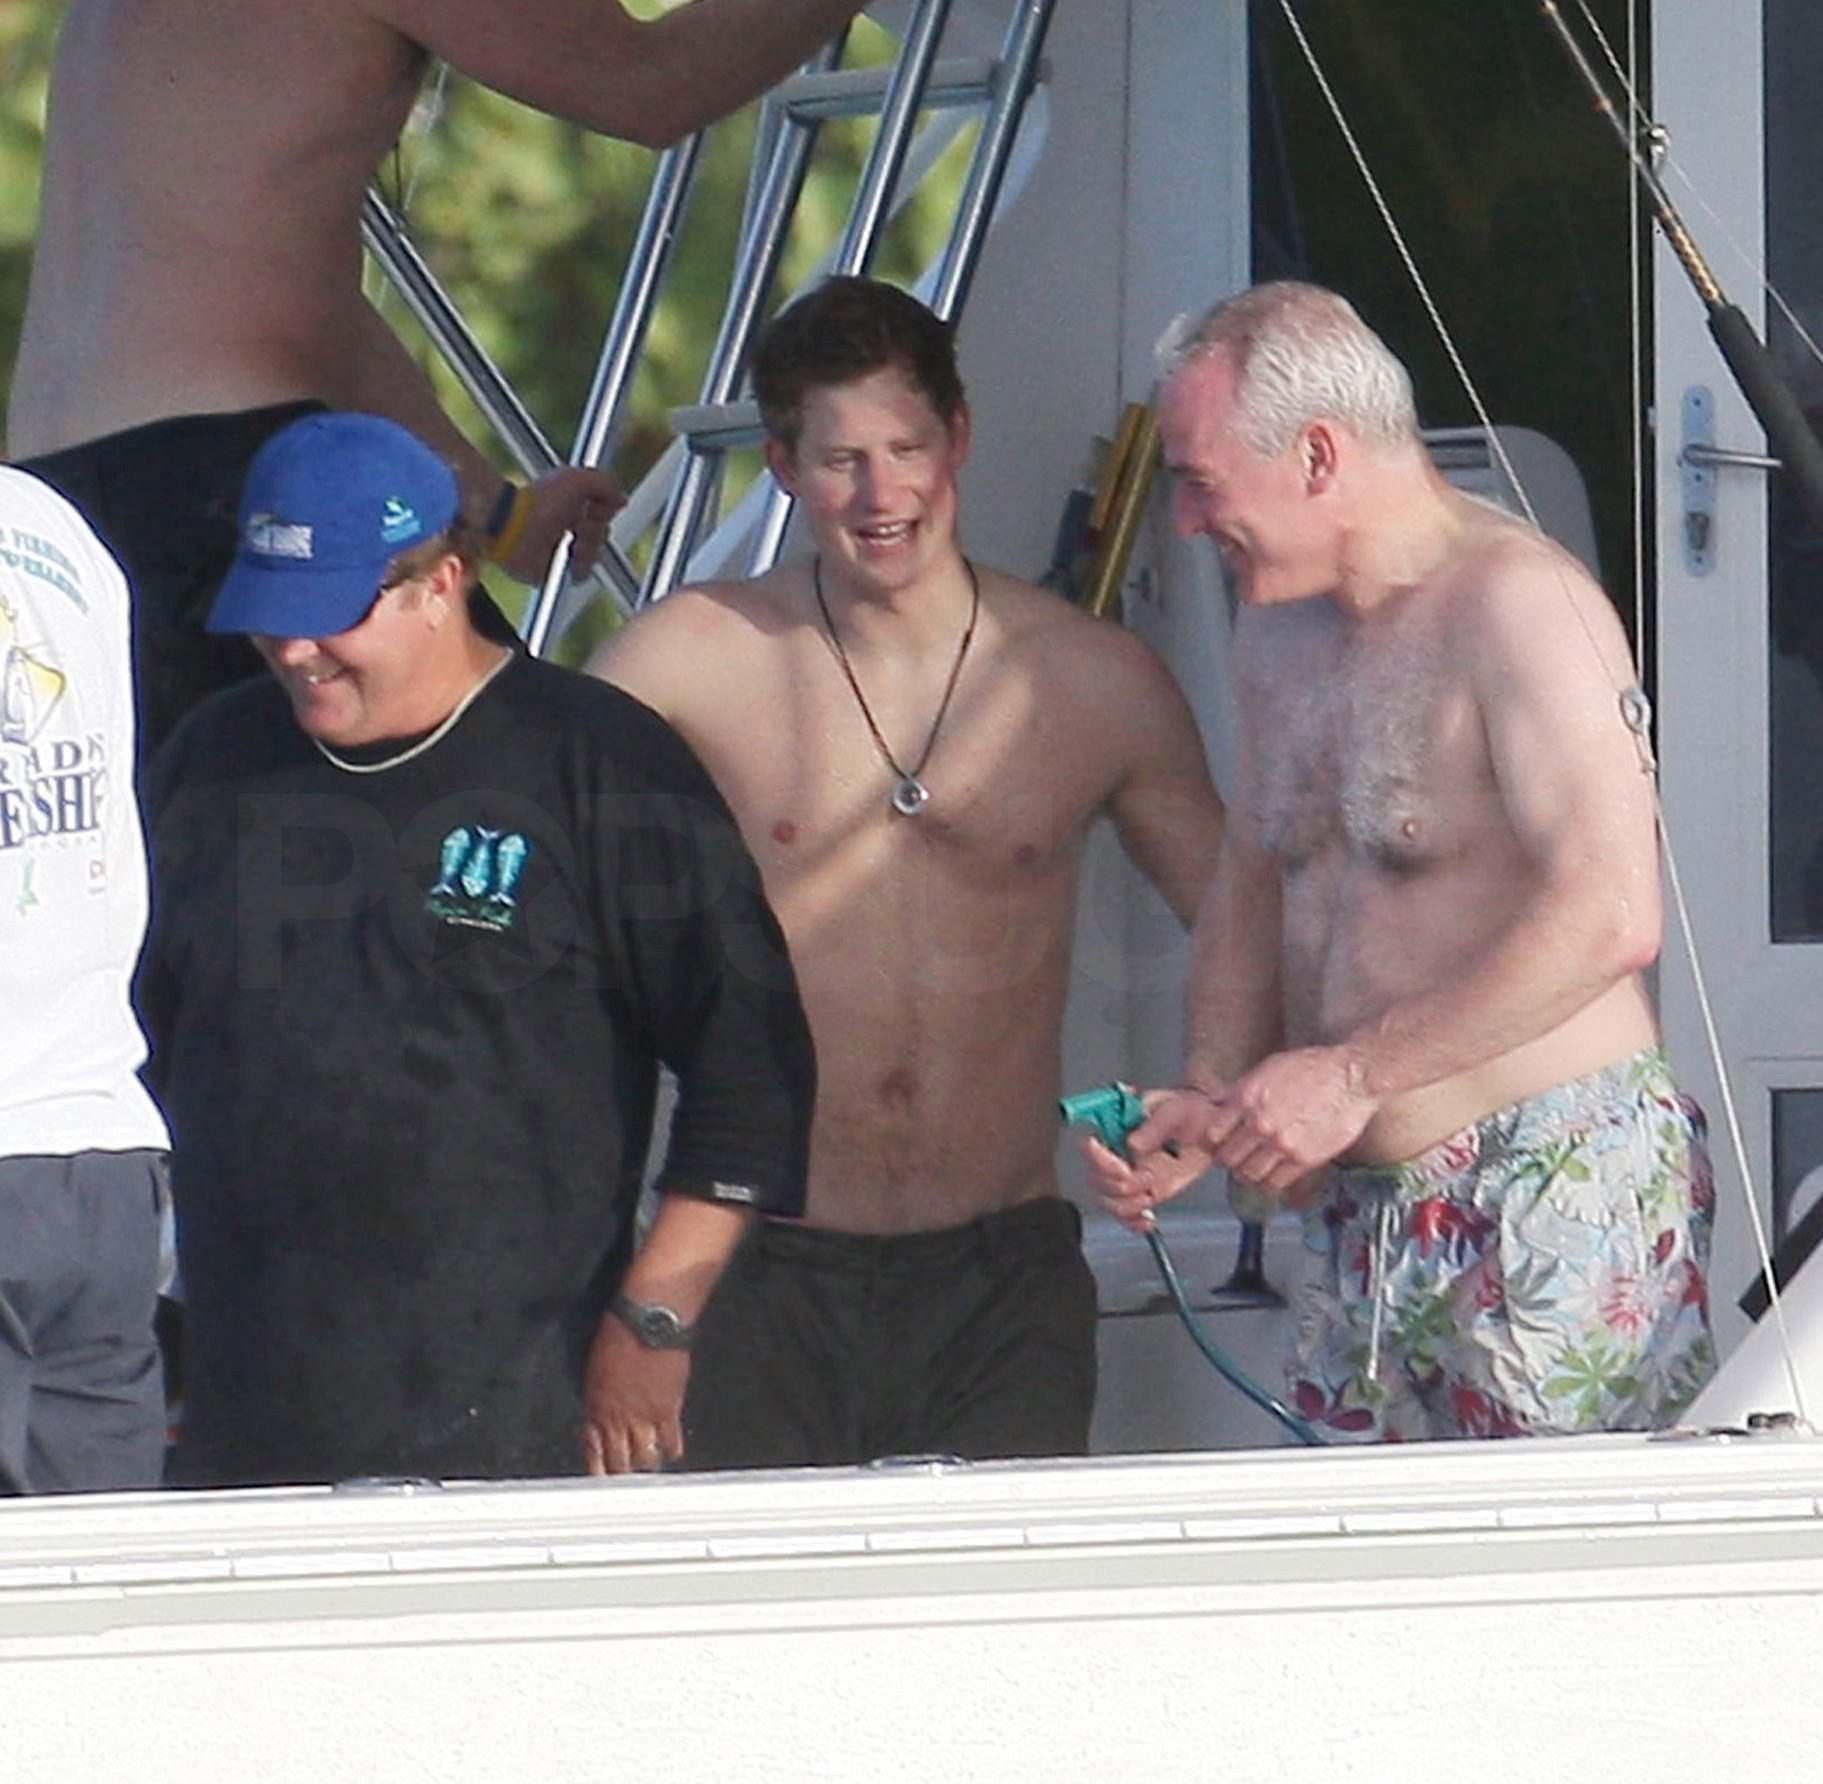 from Tucker prince harry abs gay